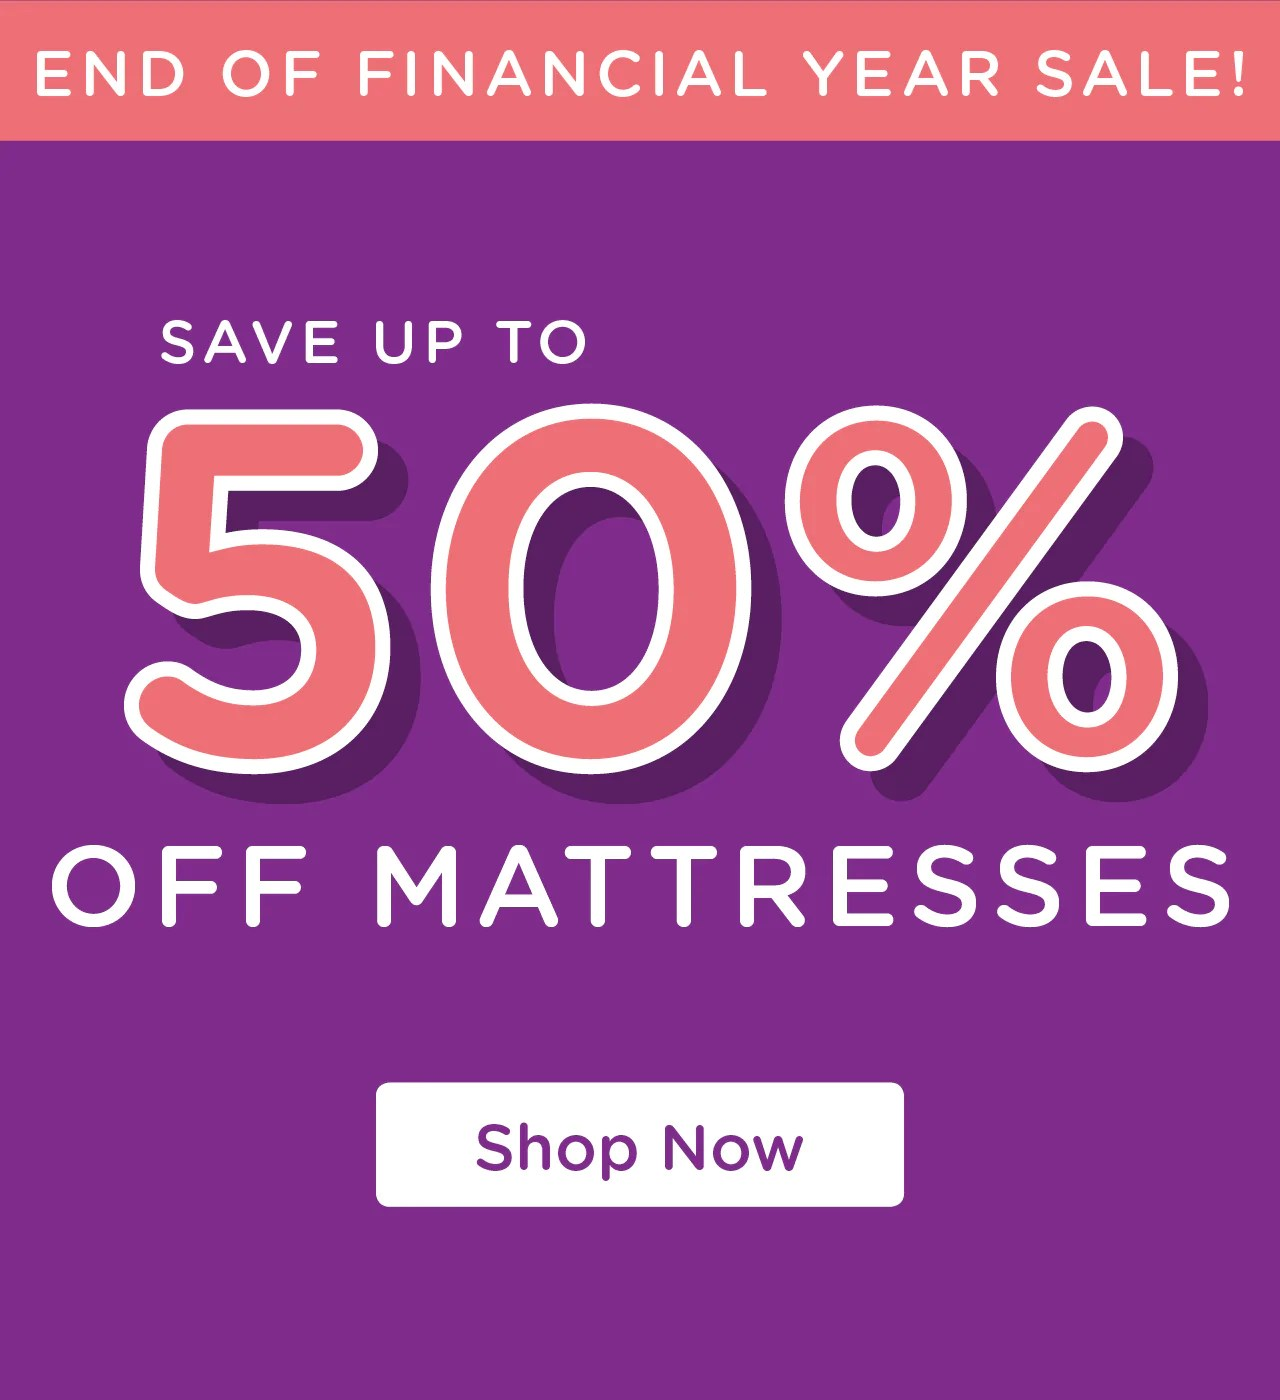 Furniture Shops In Hoppers Crossing Beds Bedroom Furniture Mattresses Beds Online More Snooze